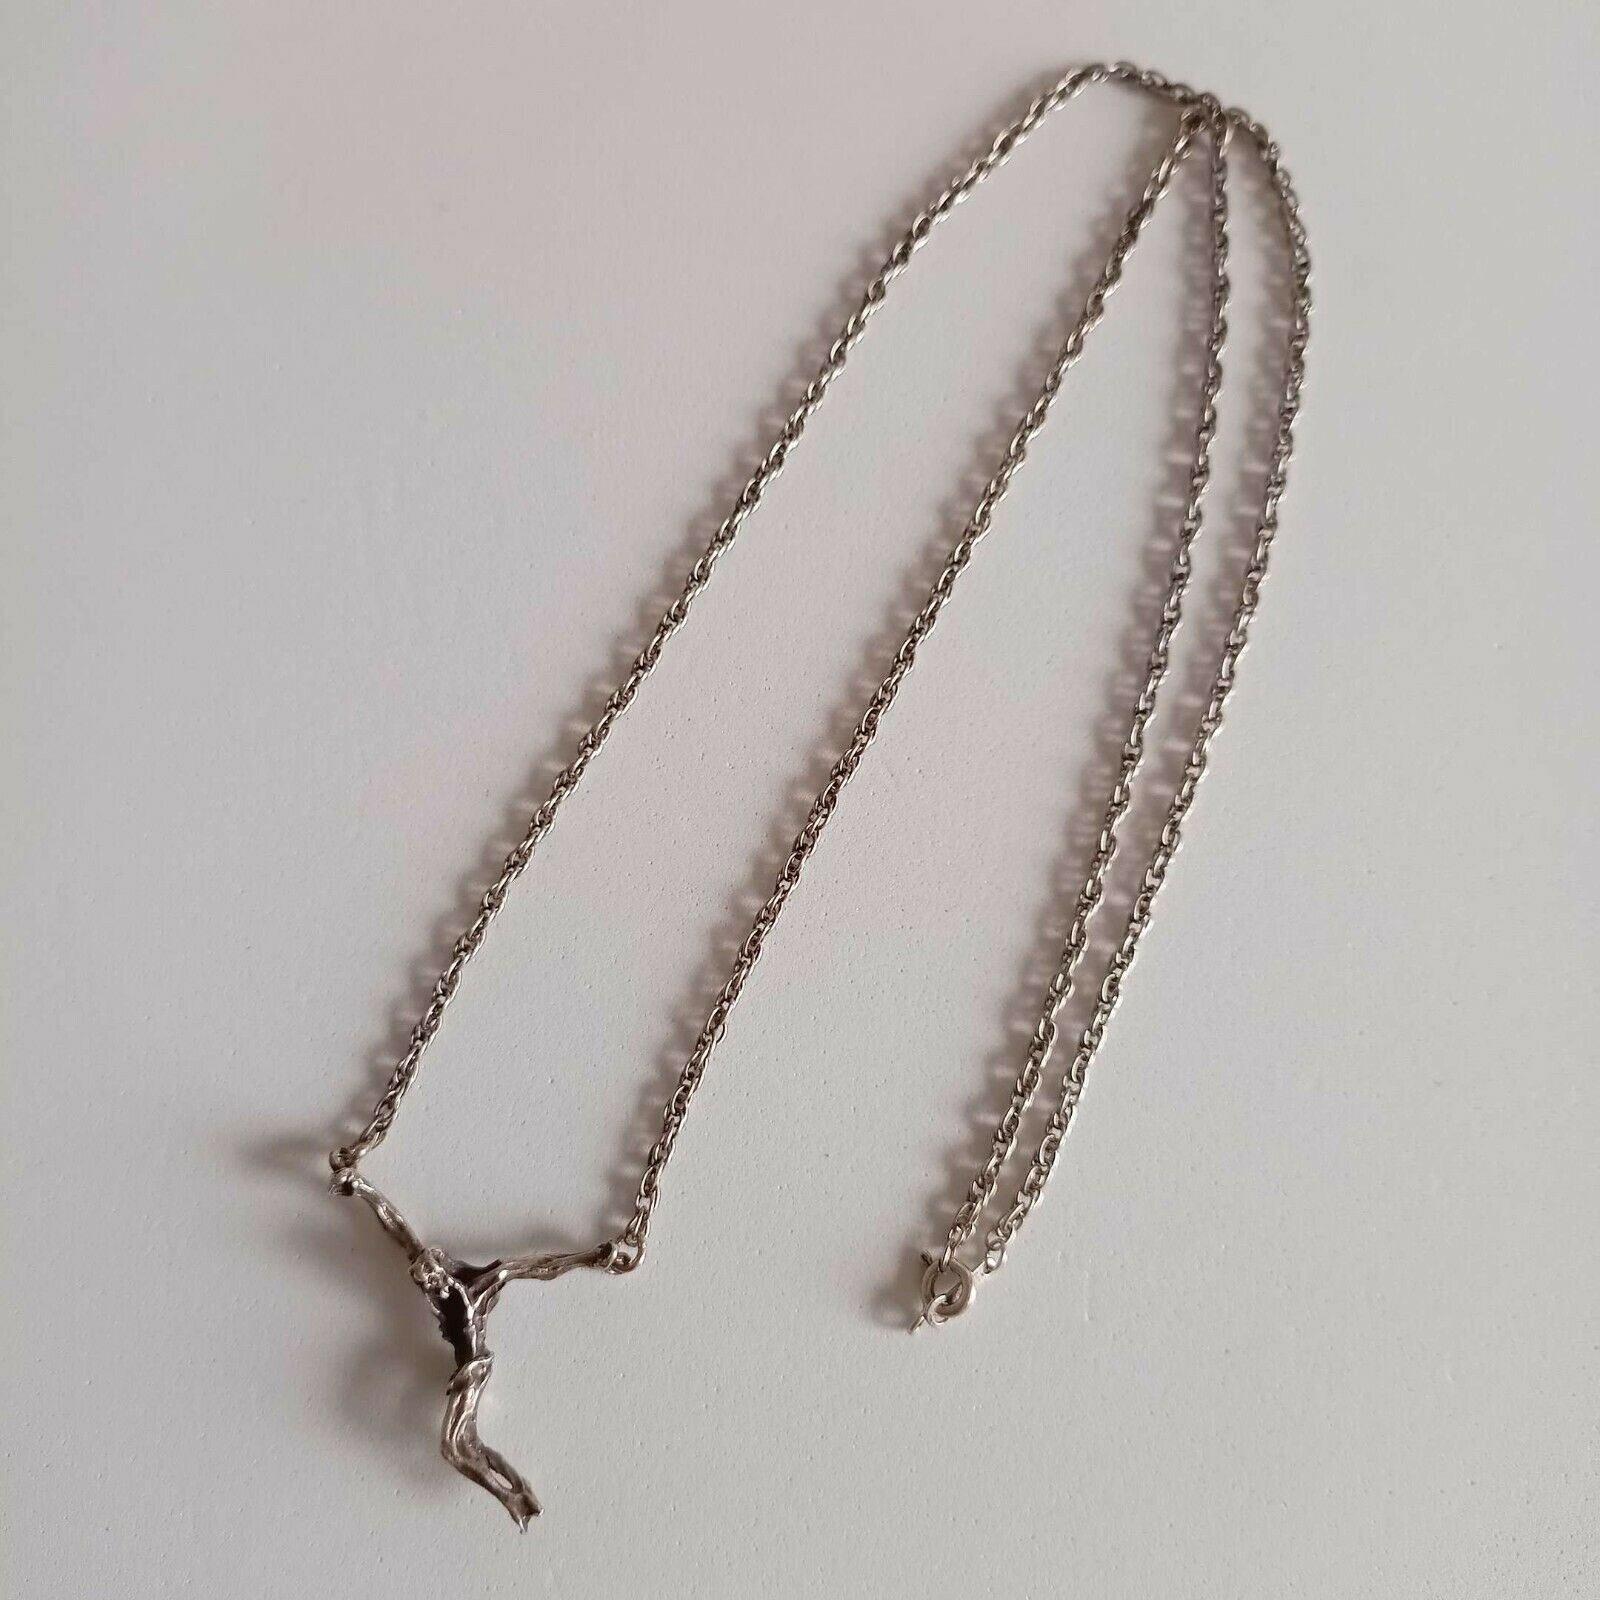 Necklace Chain Sterling Silver 925 Vintage cross crucifix Active